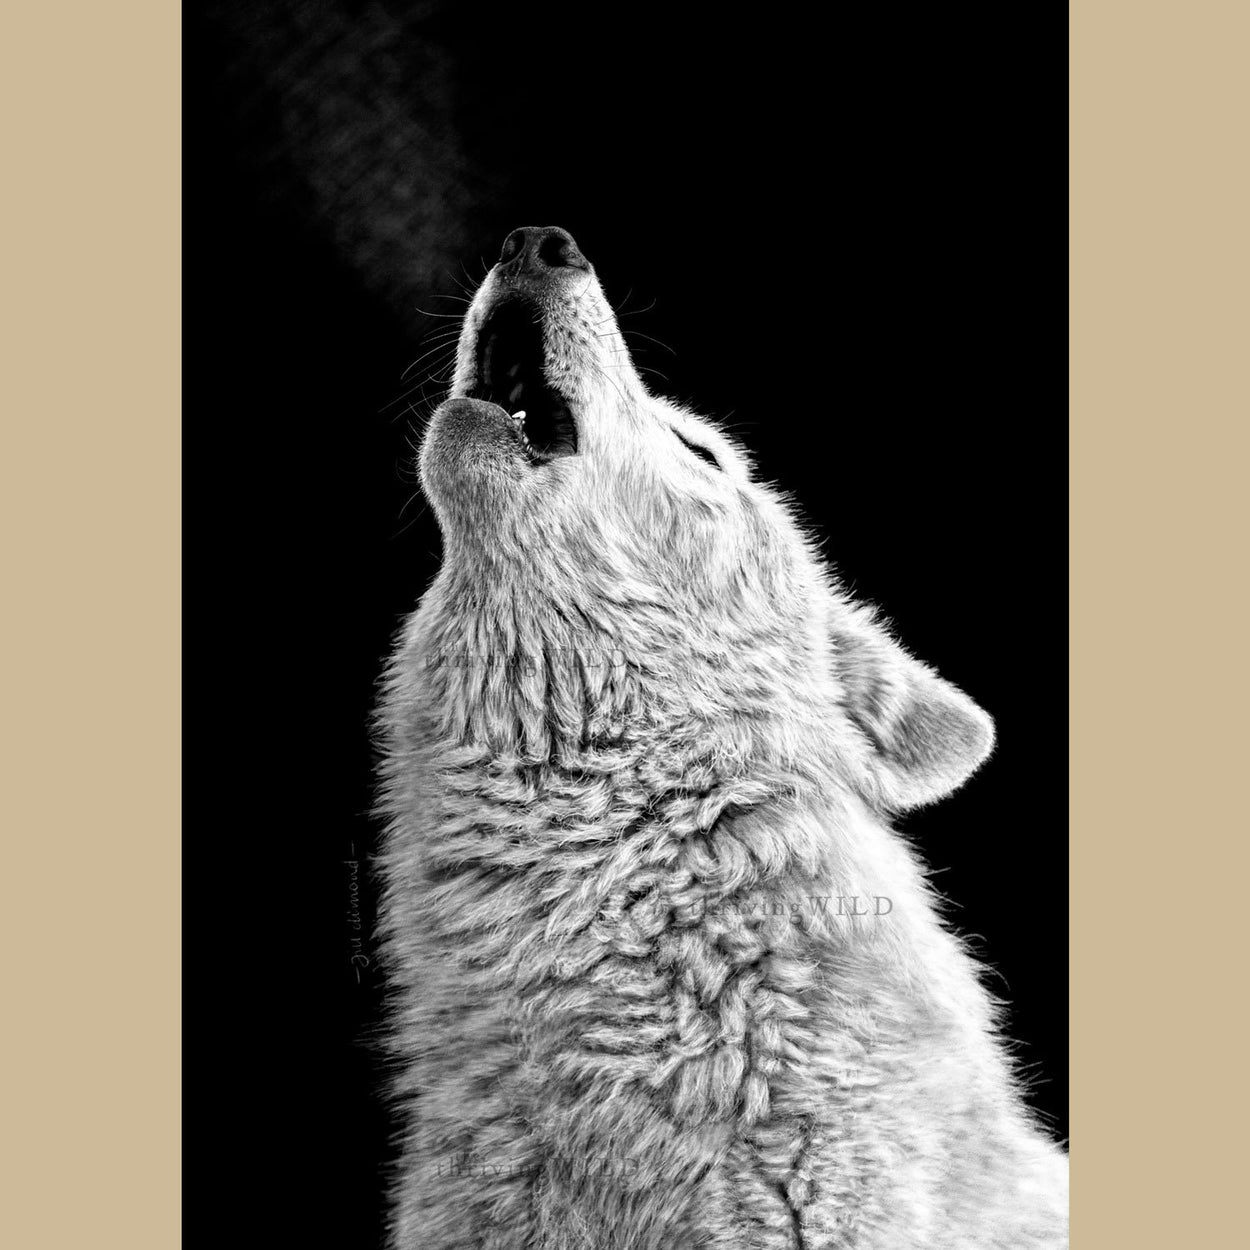 Howling Wolf Wildlife Procreate Digital Drawing - The Thriving Wild